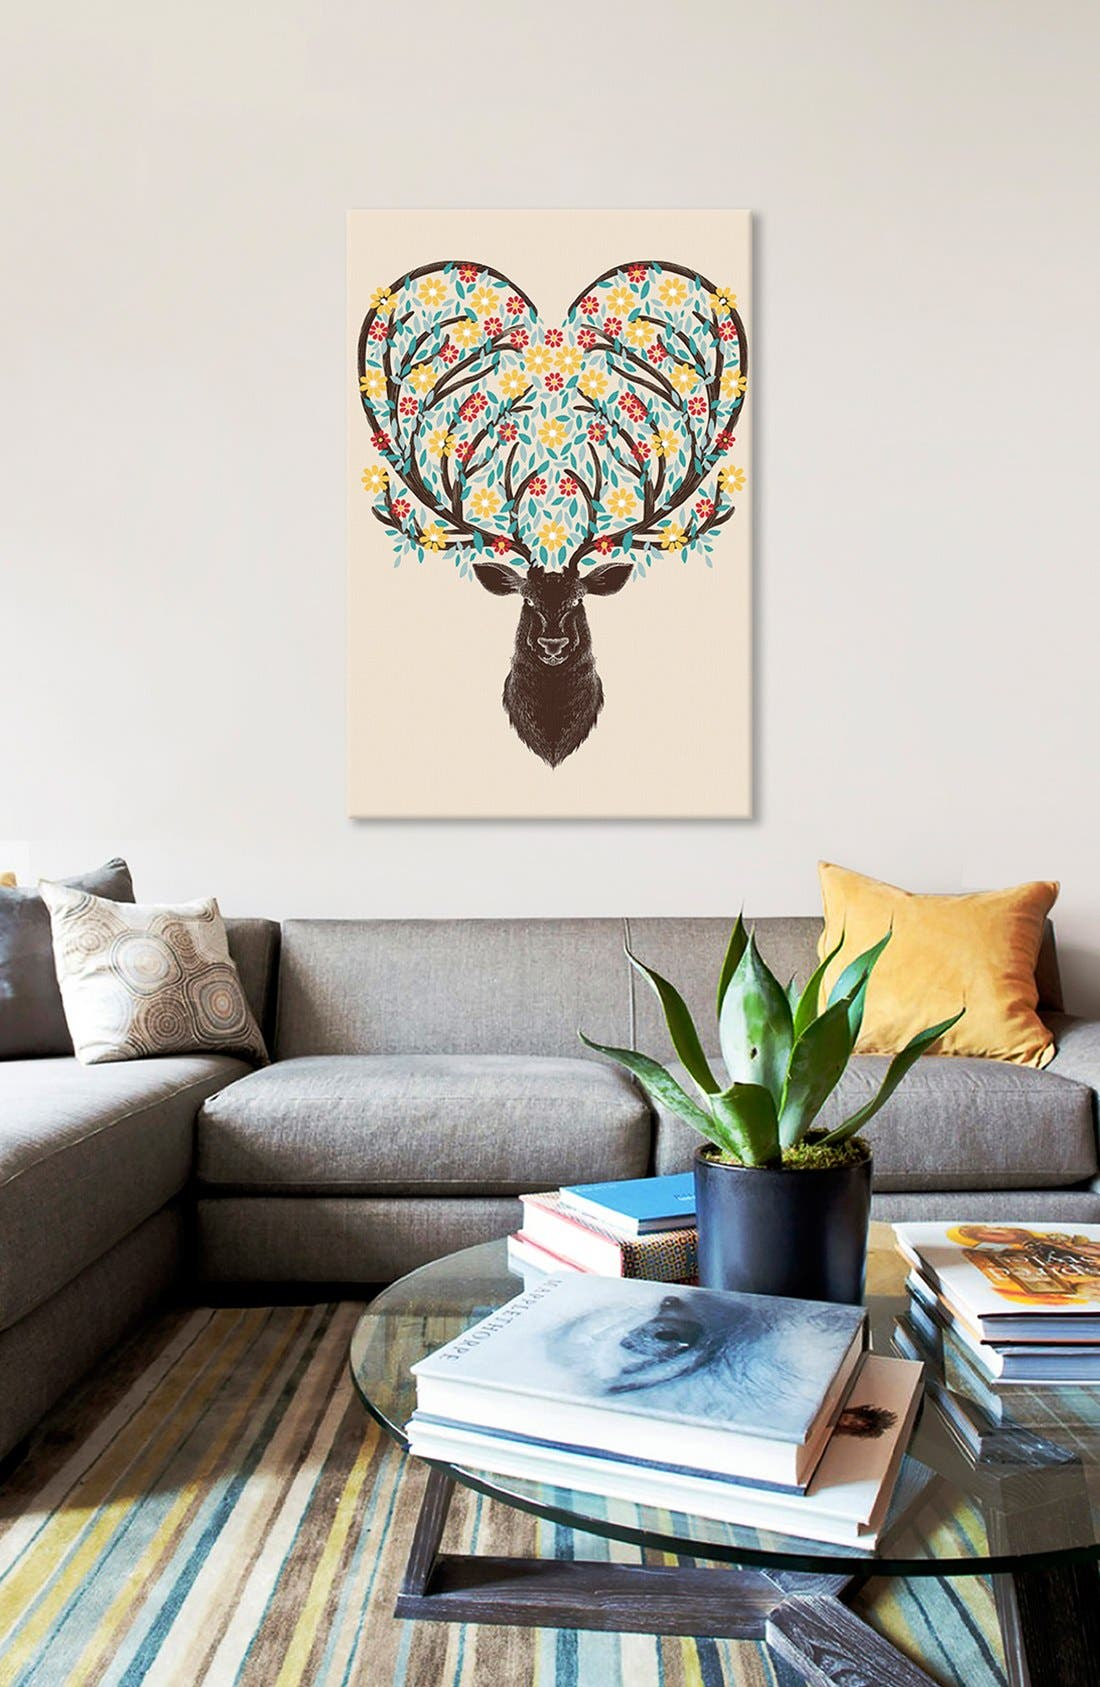 'Blooming Deer' Giclée Print Canvas Art,                             Alternate thumbnail 2, color,                             Beige